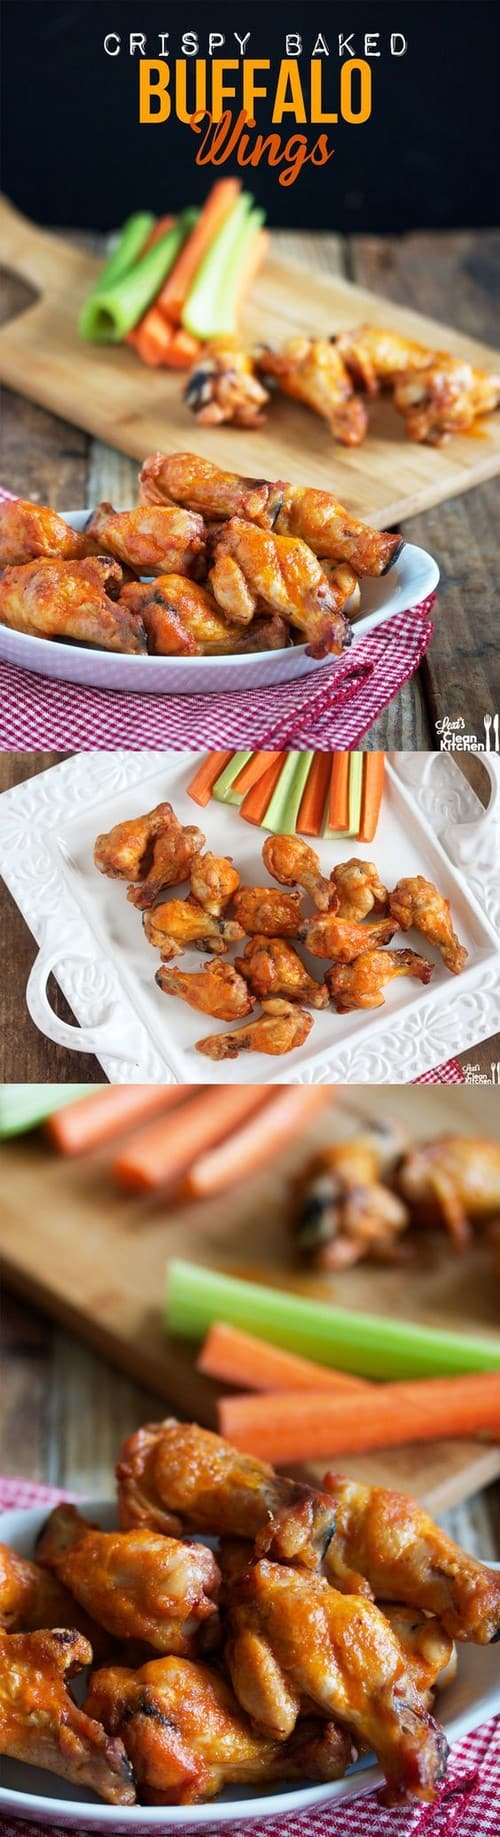 15 Whole30 Buffalo Wing Recipes Make Your Chicken Wings Sing